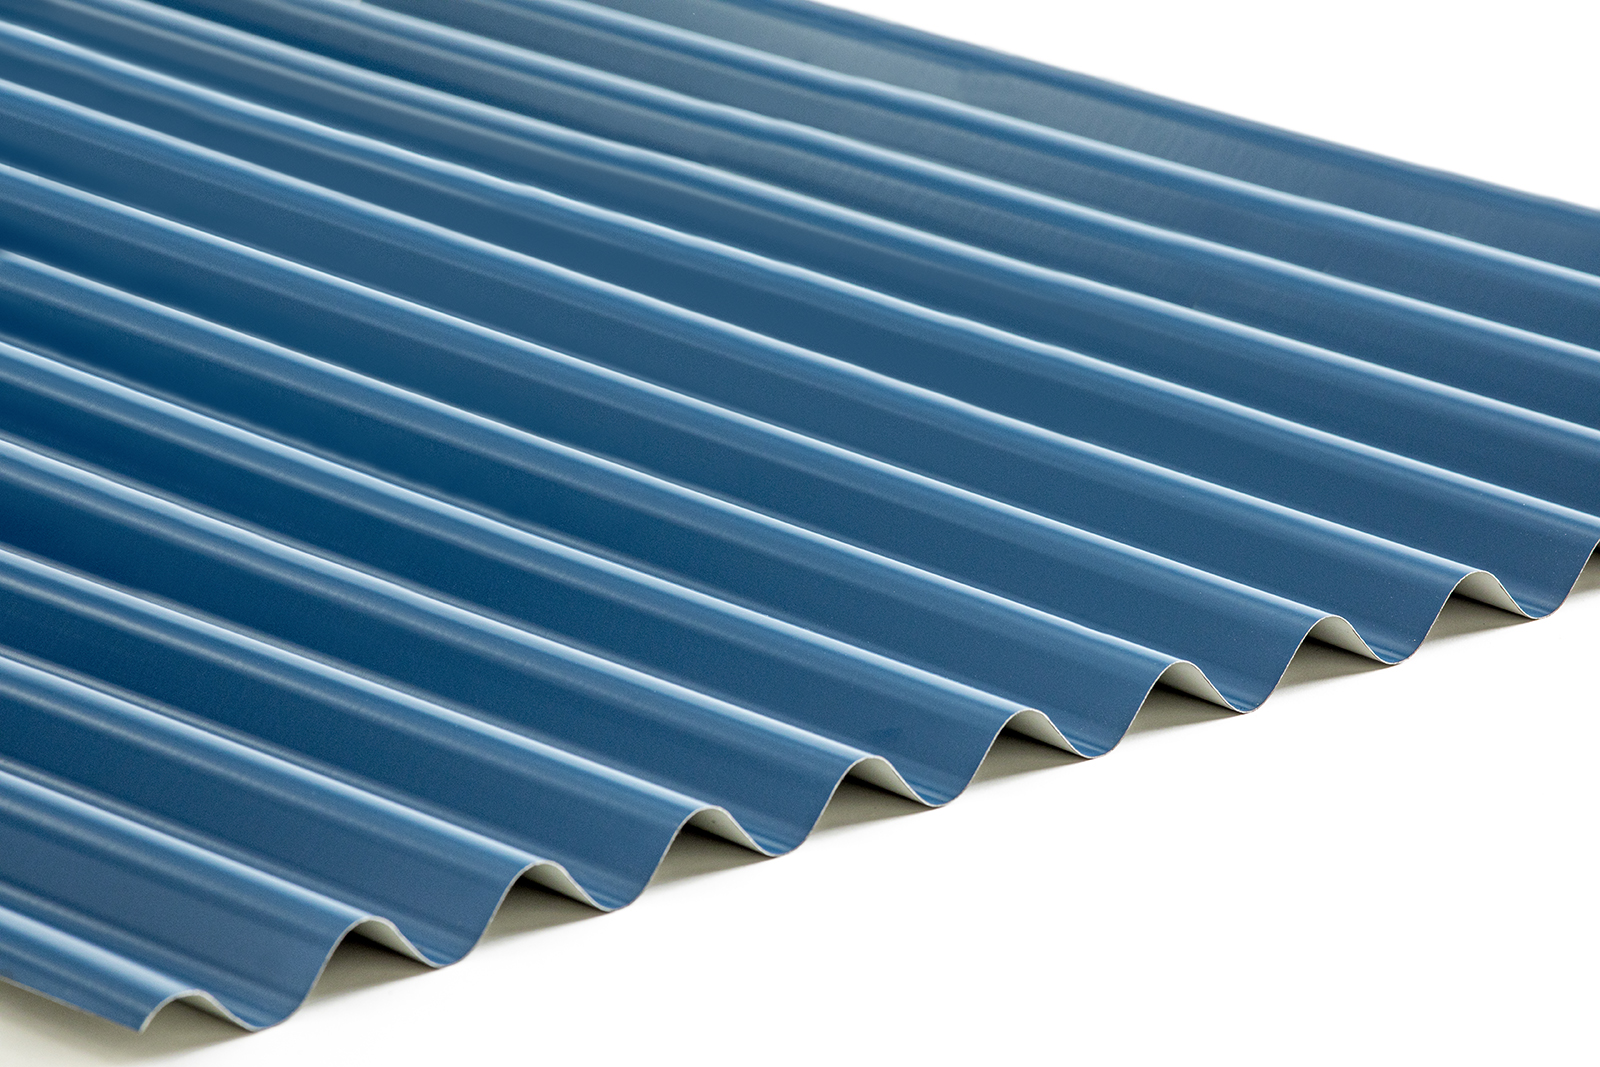 """7/8"""" Corrugated Metal Roofing Material"""